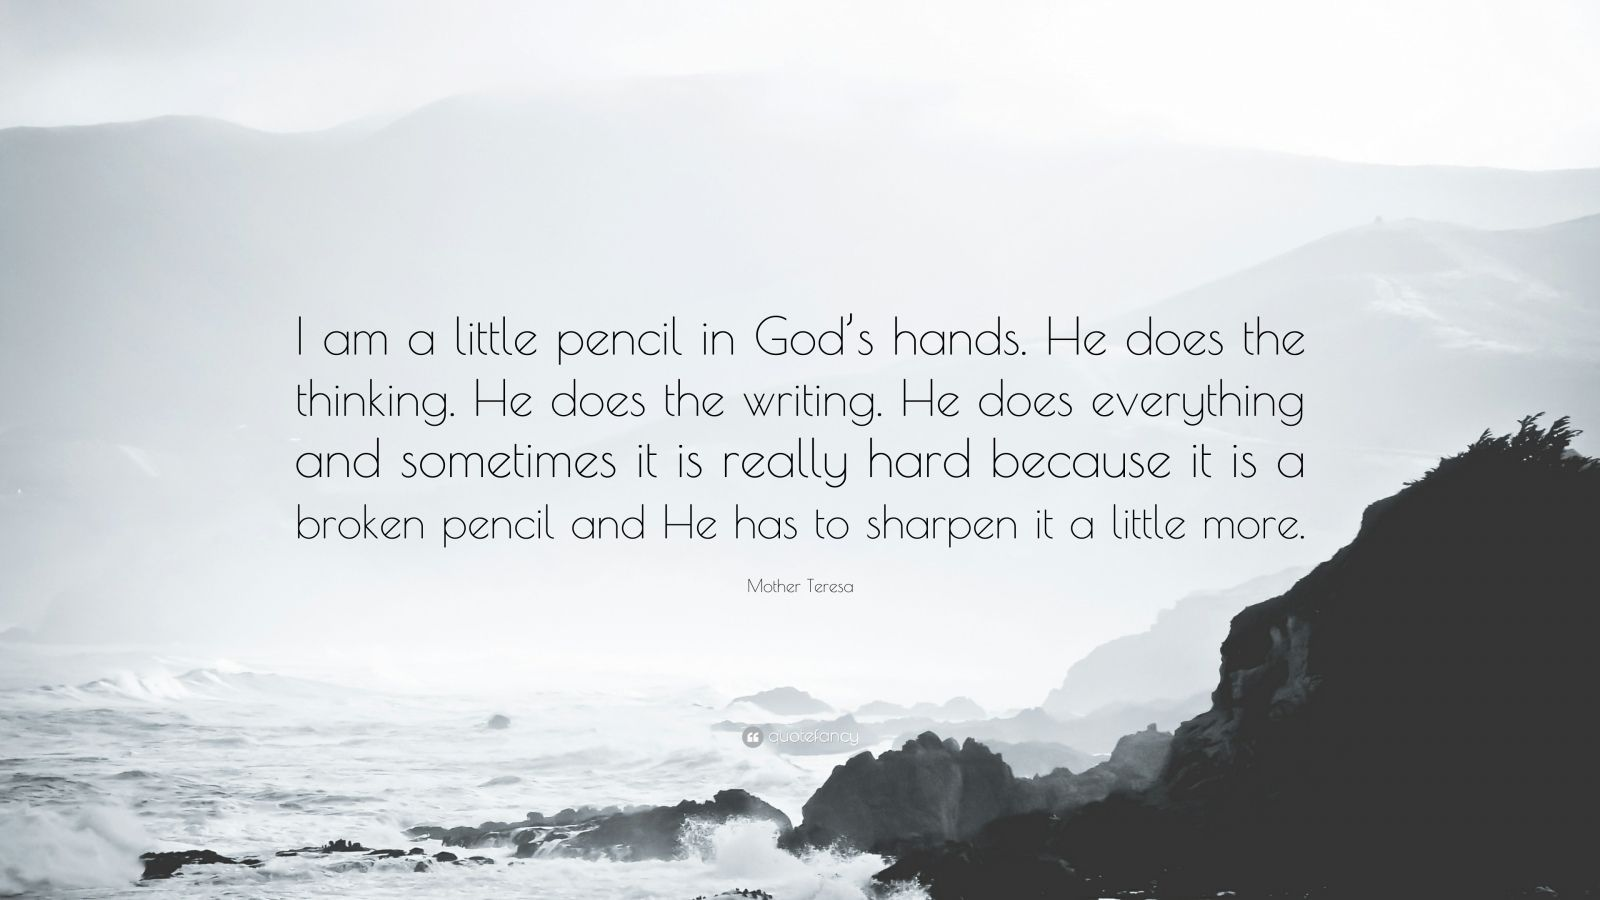 Mother Teresa Quote I Am A Little Pencil In God S Hands He Does The Thinking He Does The Writing Jackie Robinson Quotes Samuel Johnson Quote Disney Quotes